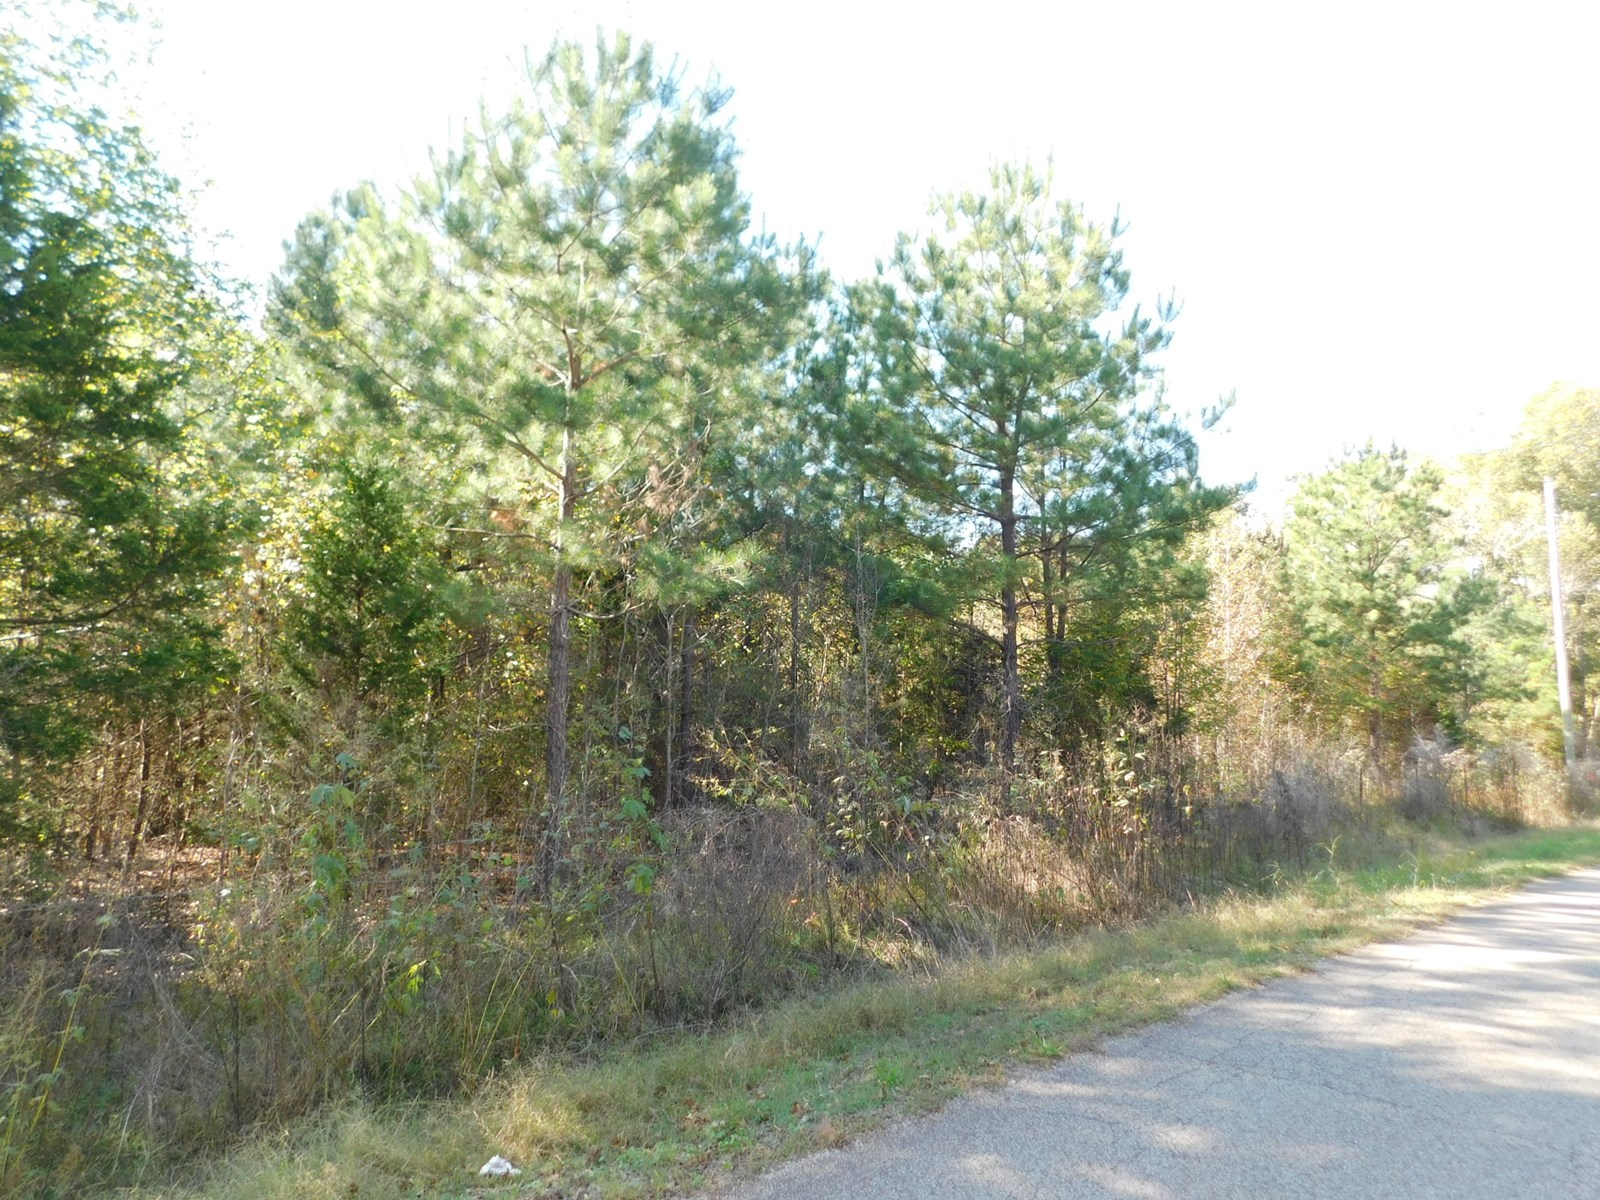 LAND FOR SALE IN TN NEAR GOLFING, FISHING, HUNTING, TN RIVER